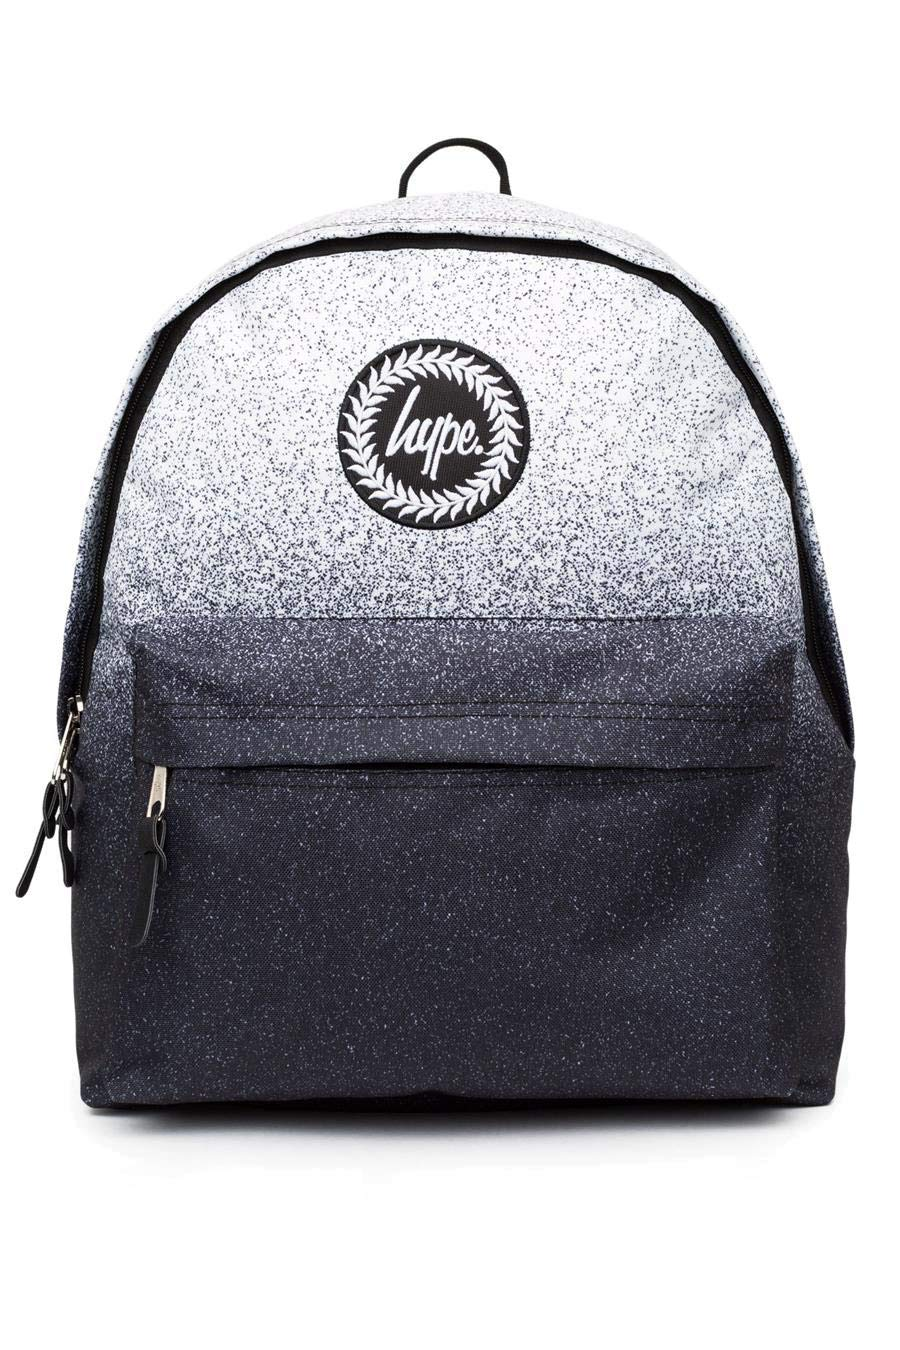 Hype Mens//Boys Crest Embroidered Black With Navy Speckle Backpack